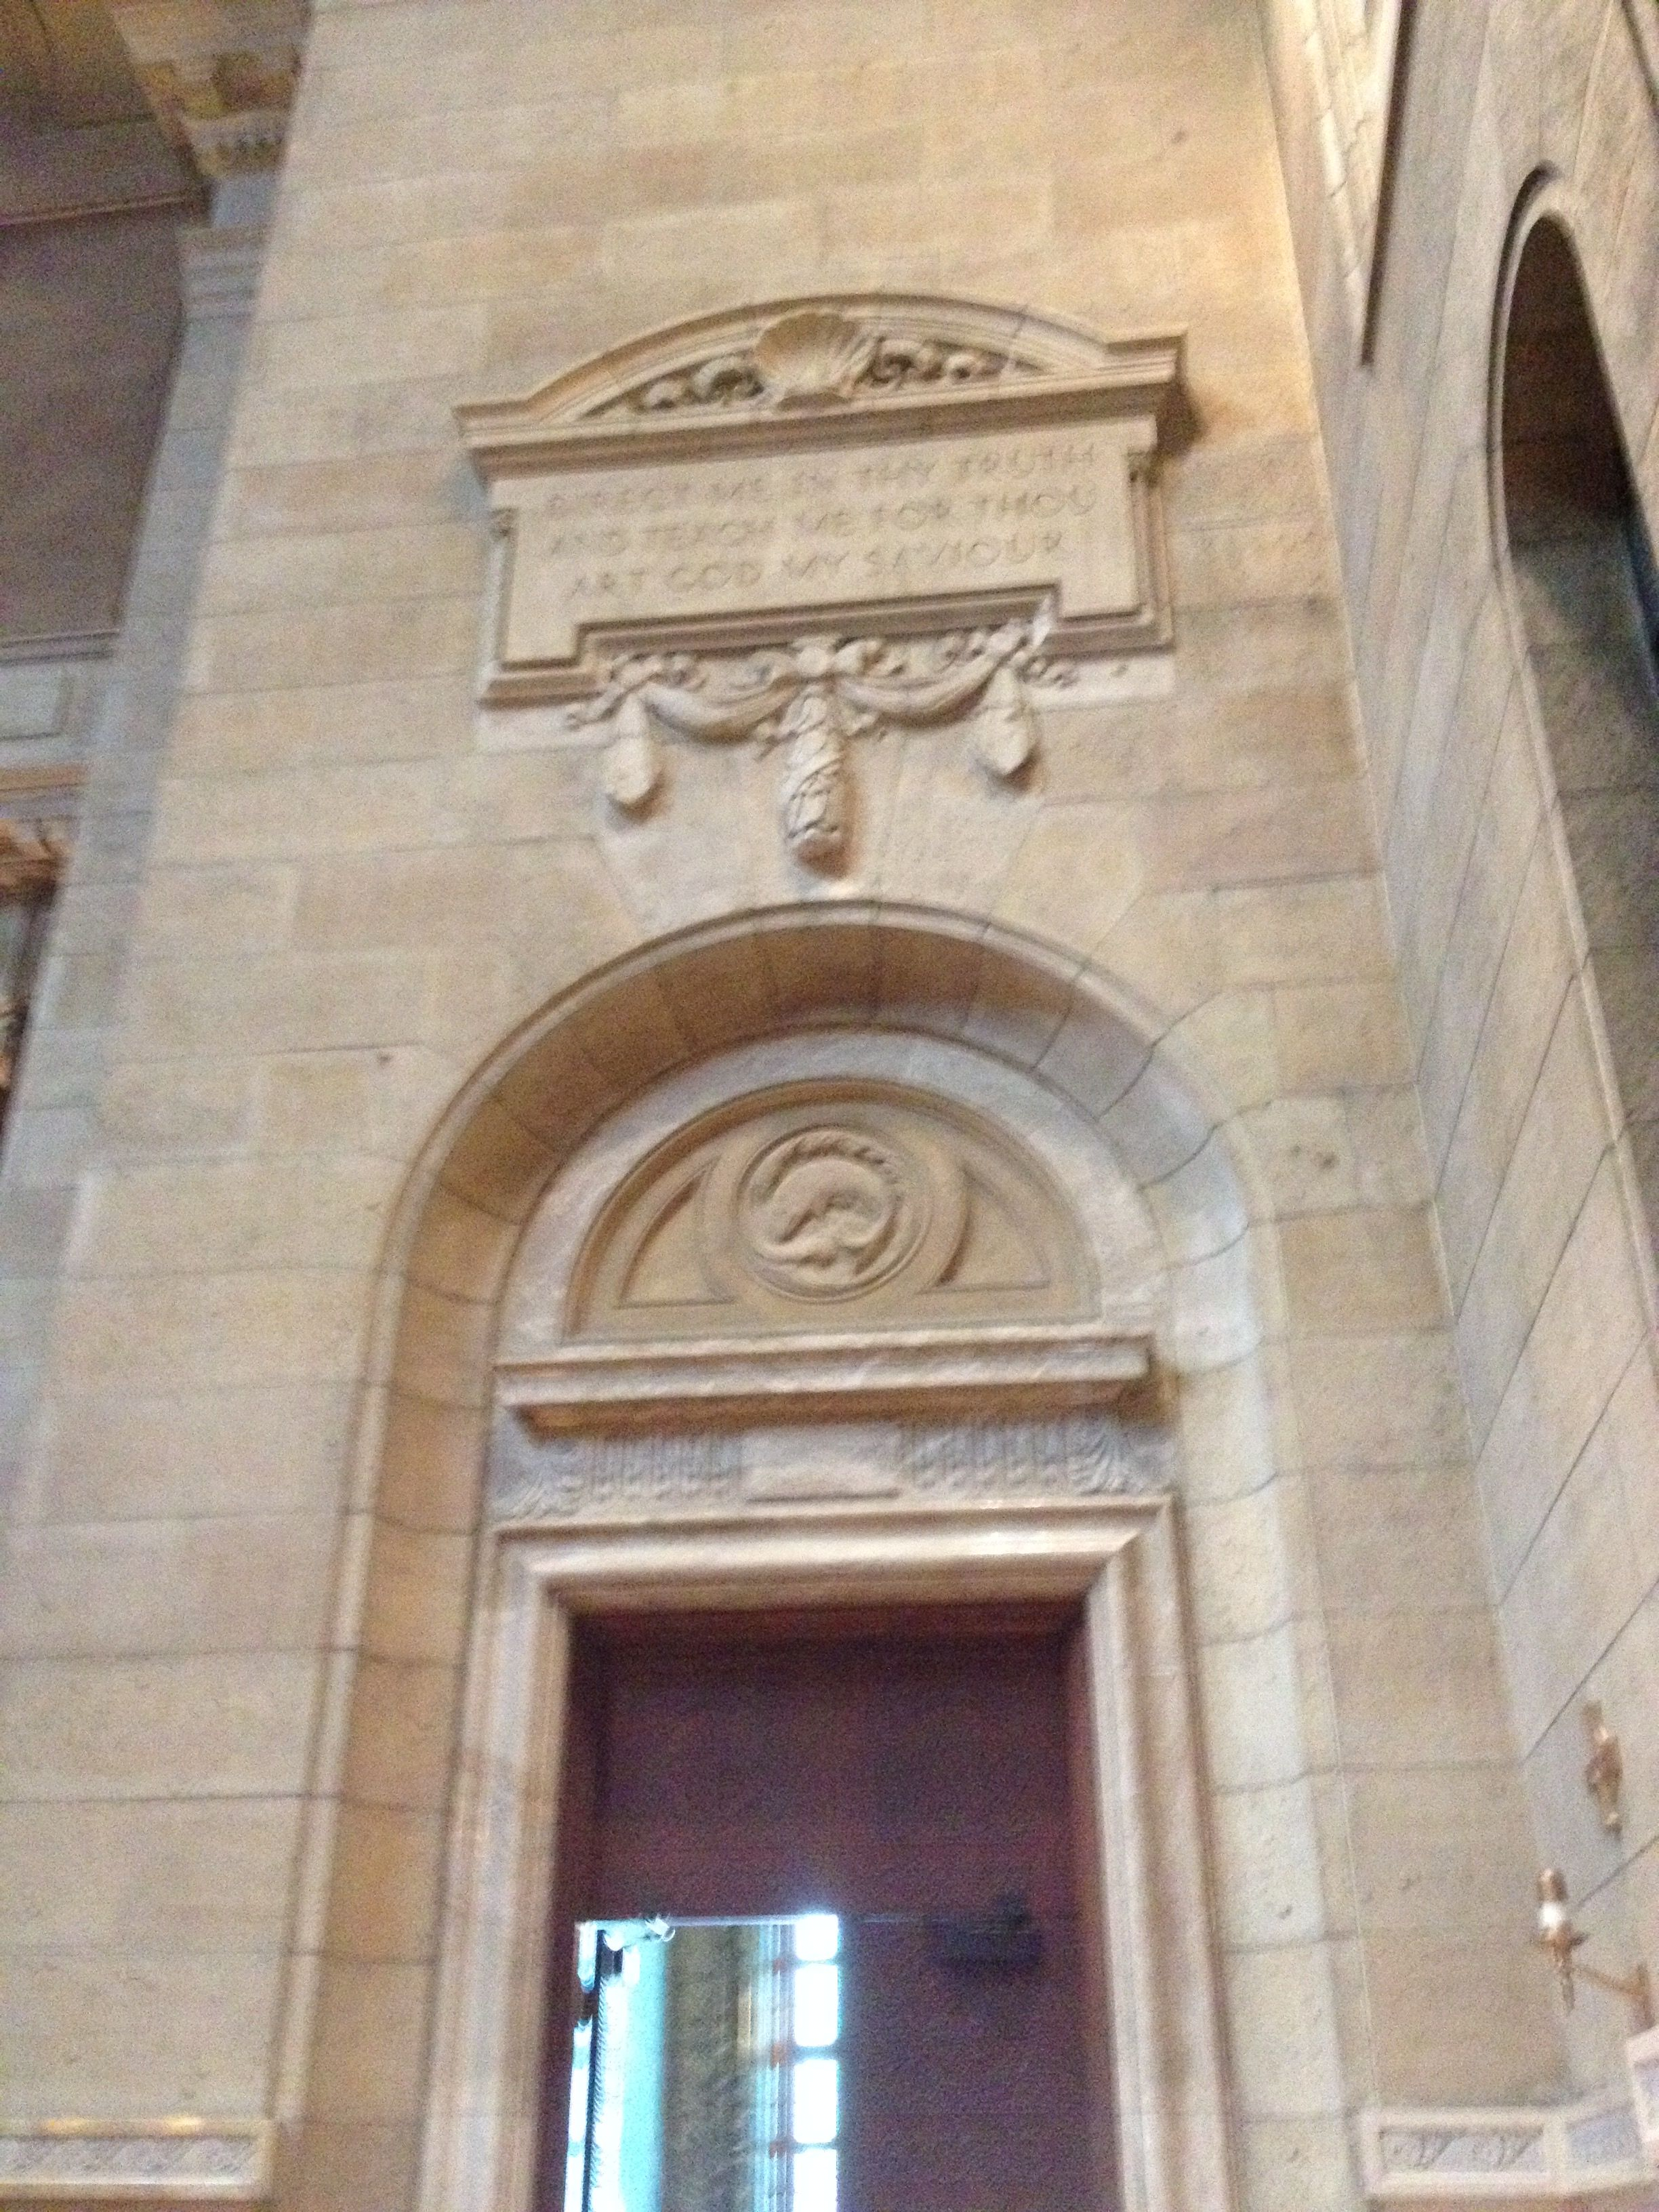 Another side portal with a whale tympanum and apron blessing. | Cathedral of Saint Paul in St. Paul, MN